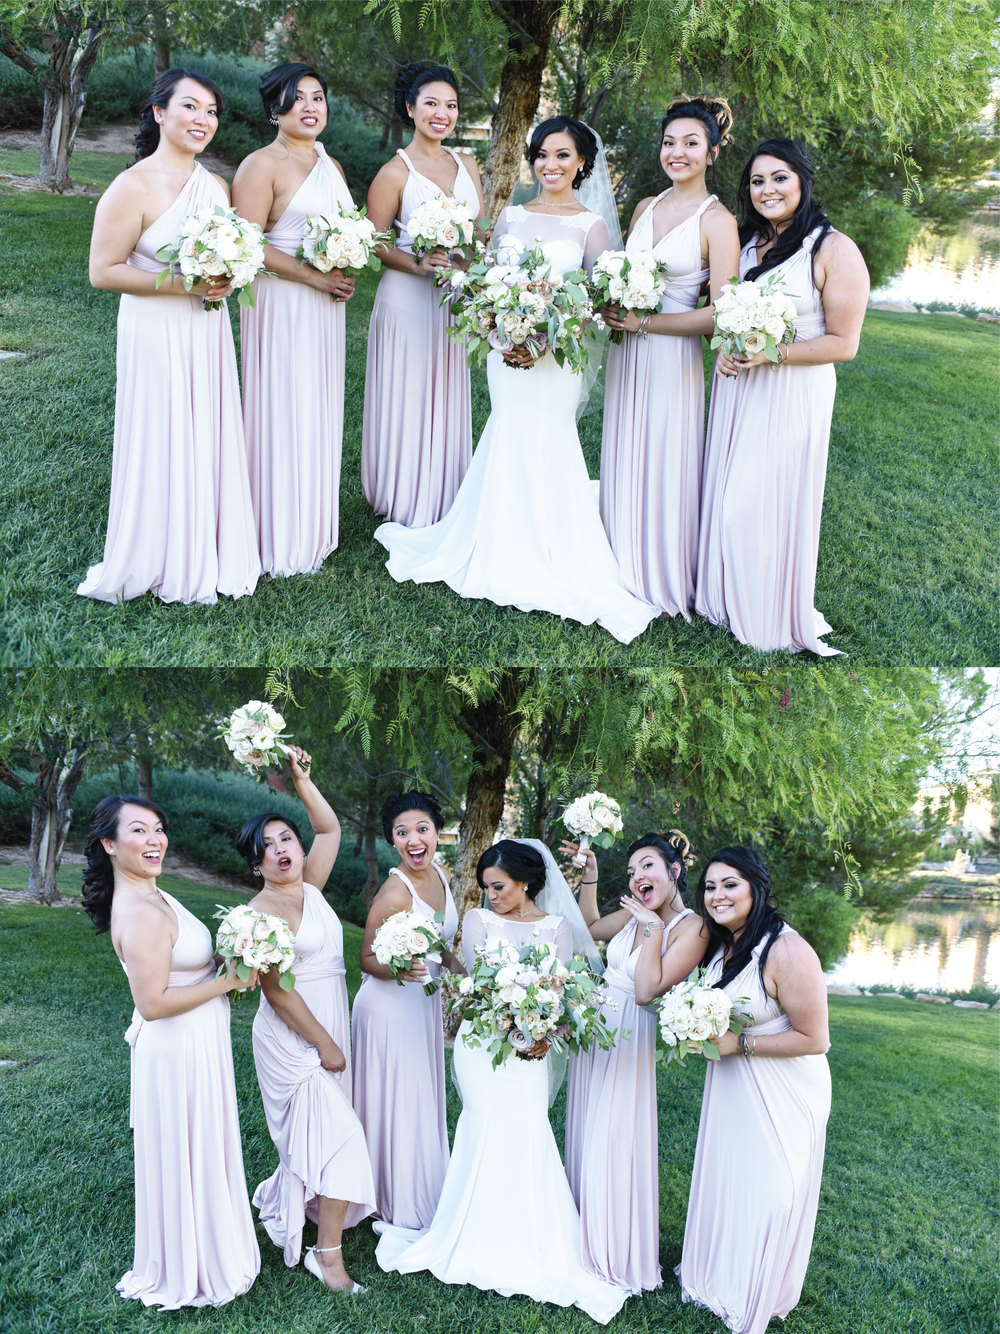 LAKE LAS VEGAS WEDDING, LAS VEGAS WEDDING, LAS VEGAS, BRIDE, BEAUTIFUL BRIDE, ASHLEY MARIE MYERS